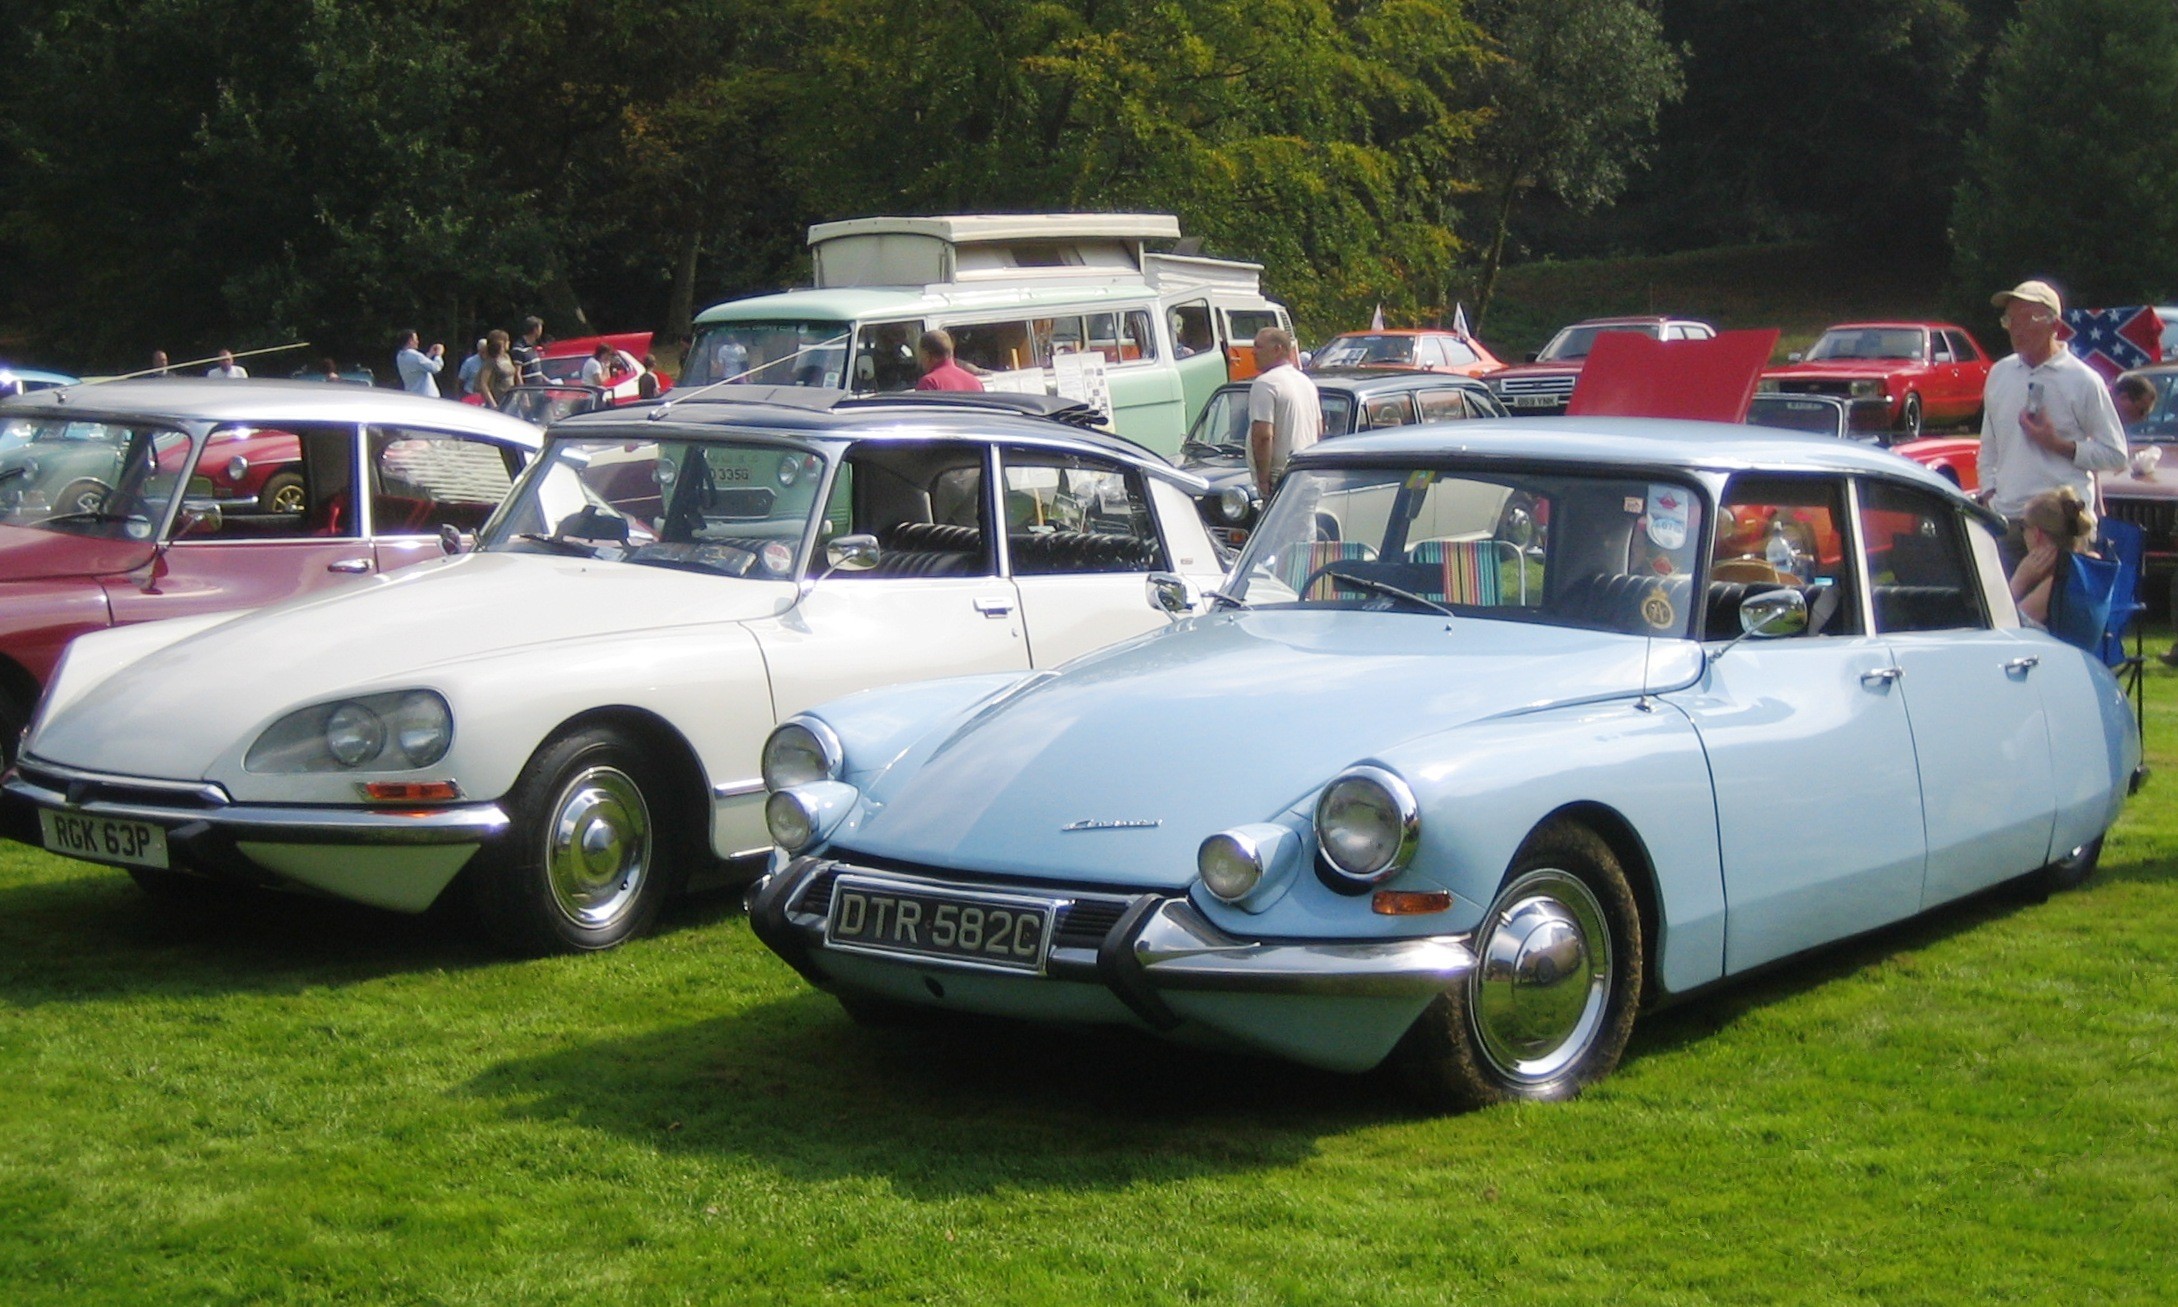 File:Citroen DS 19 ca 1965 gregarious at Castle Hedingham 2008.JPG